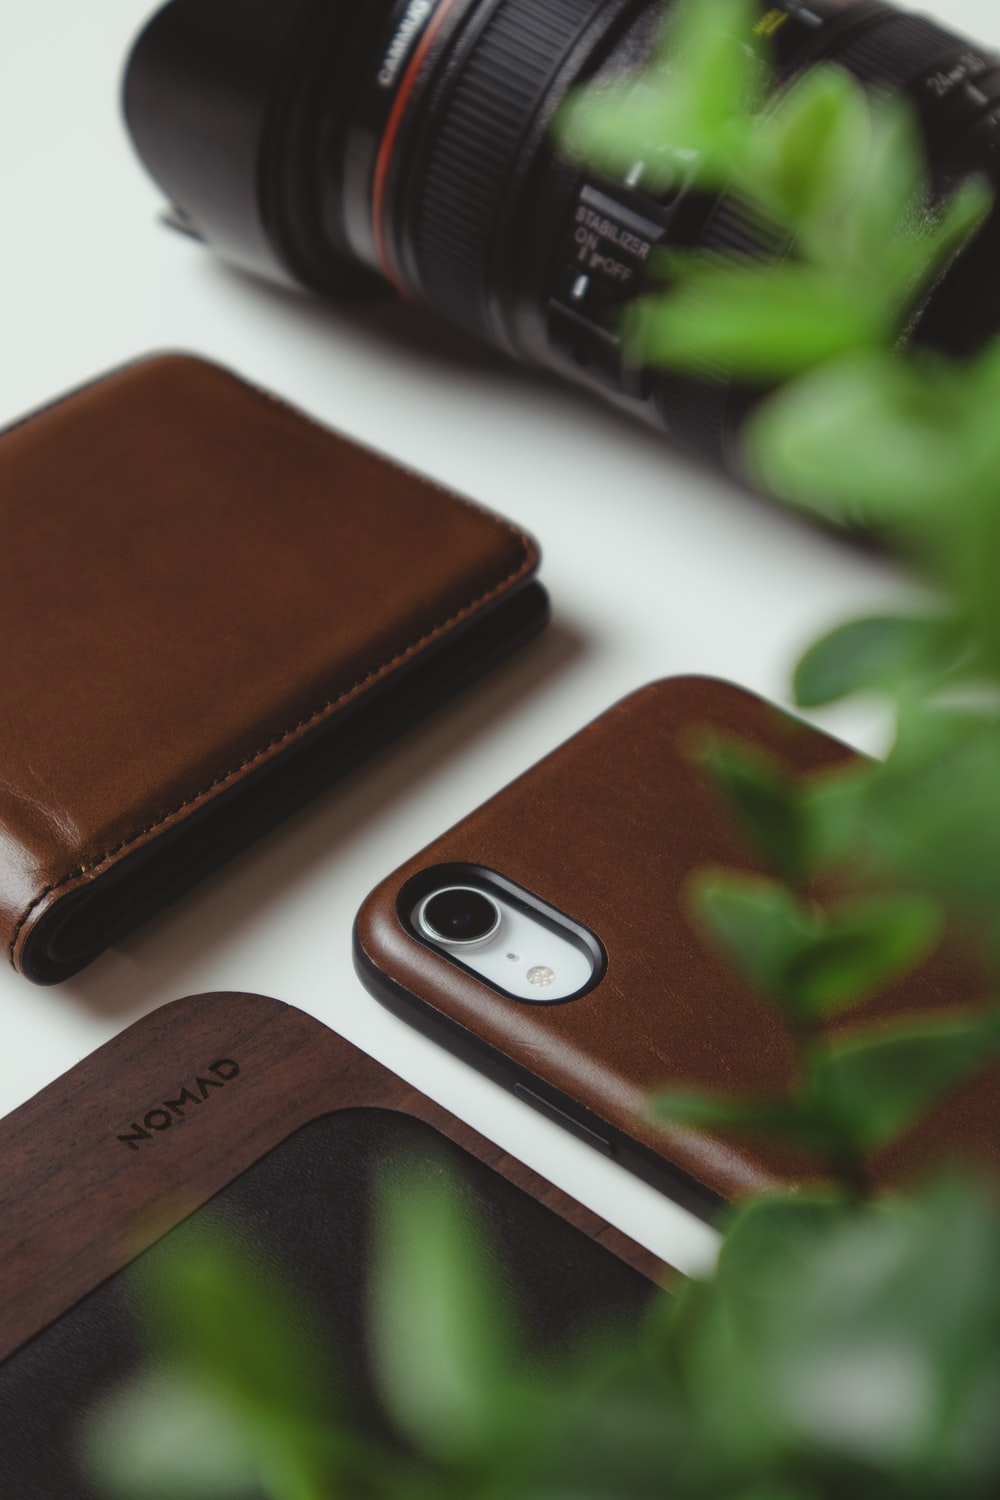 silver iphone 6 beside brown leather bifold wallet